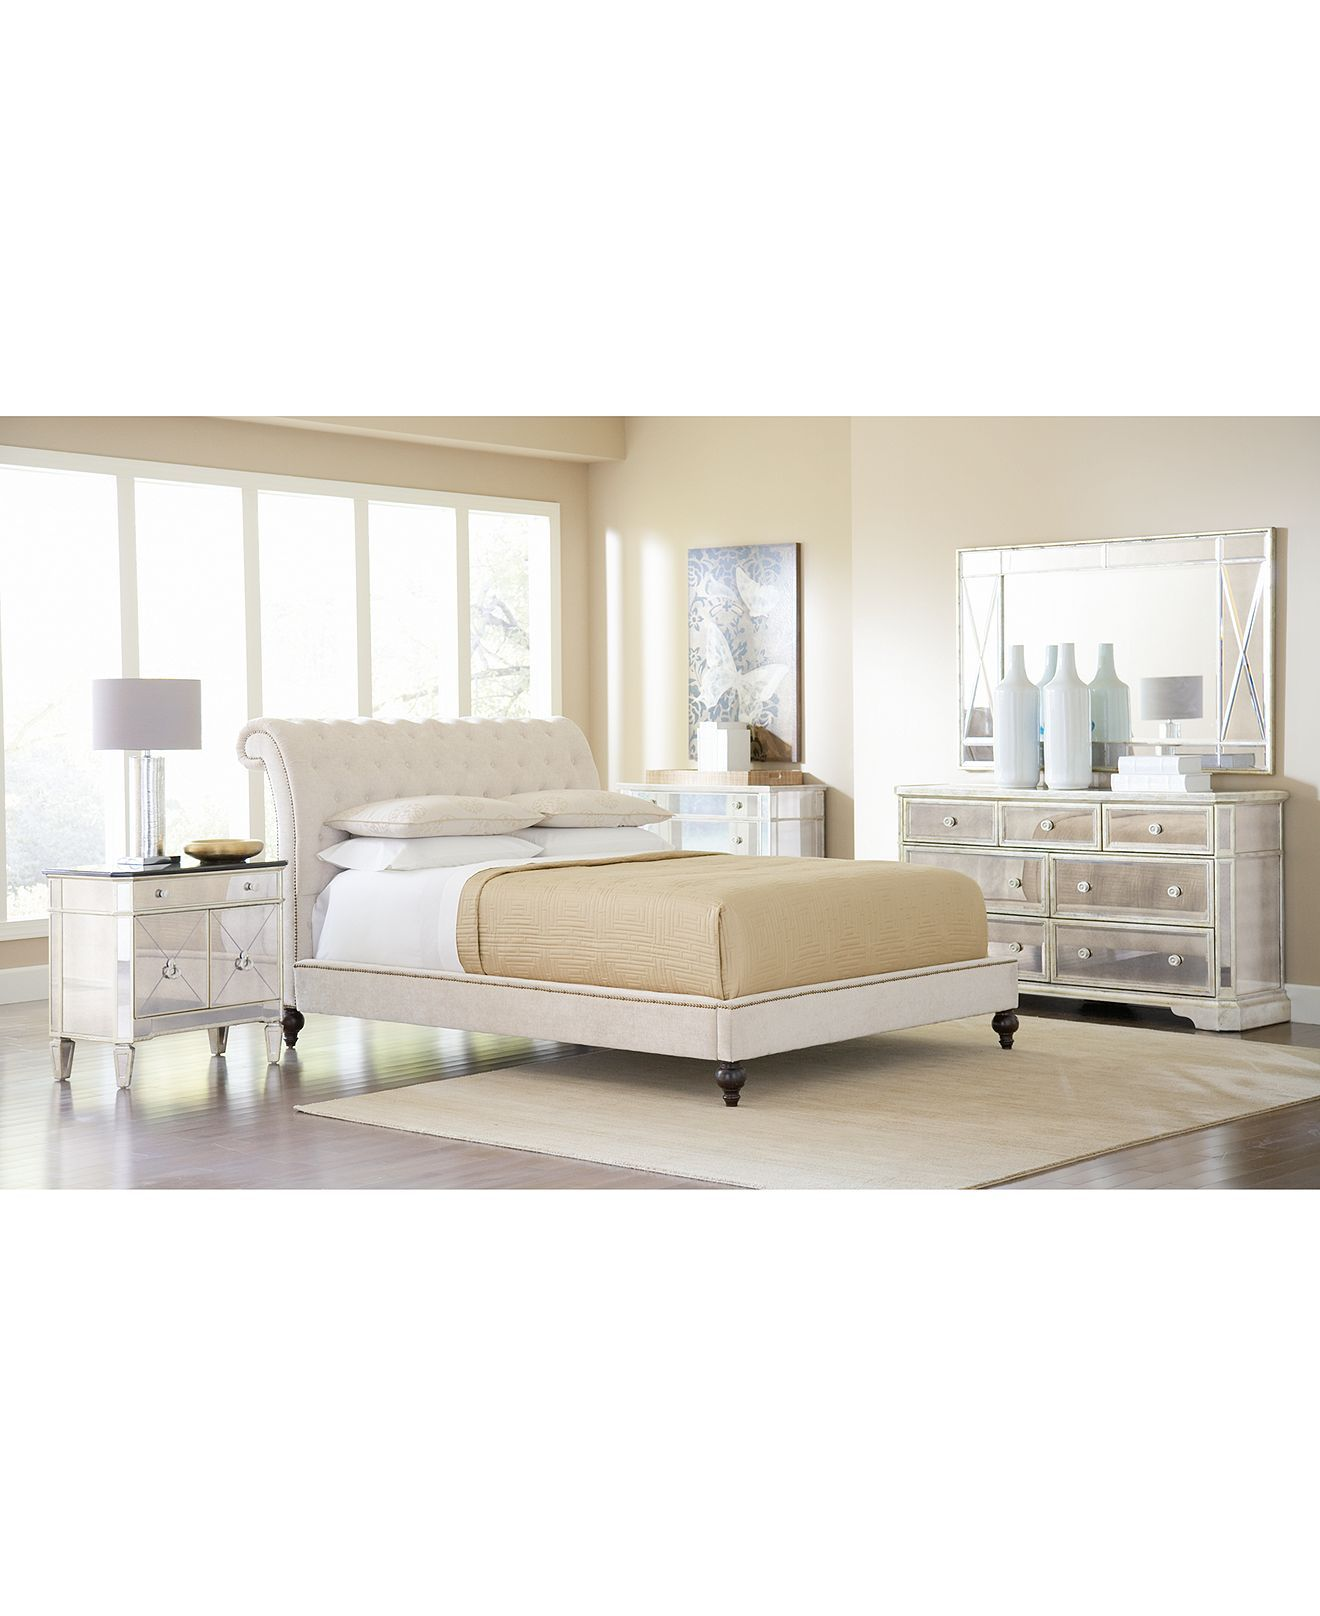 Mirrored Furniture Bedroom: Marais Mirrored Furniture Collection